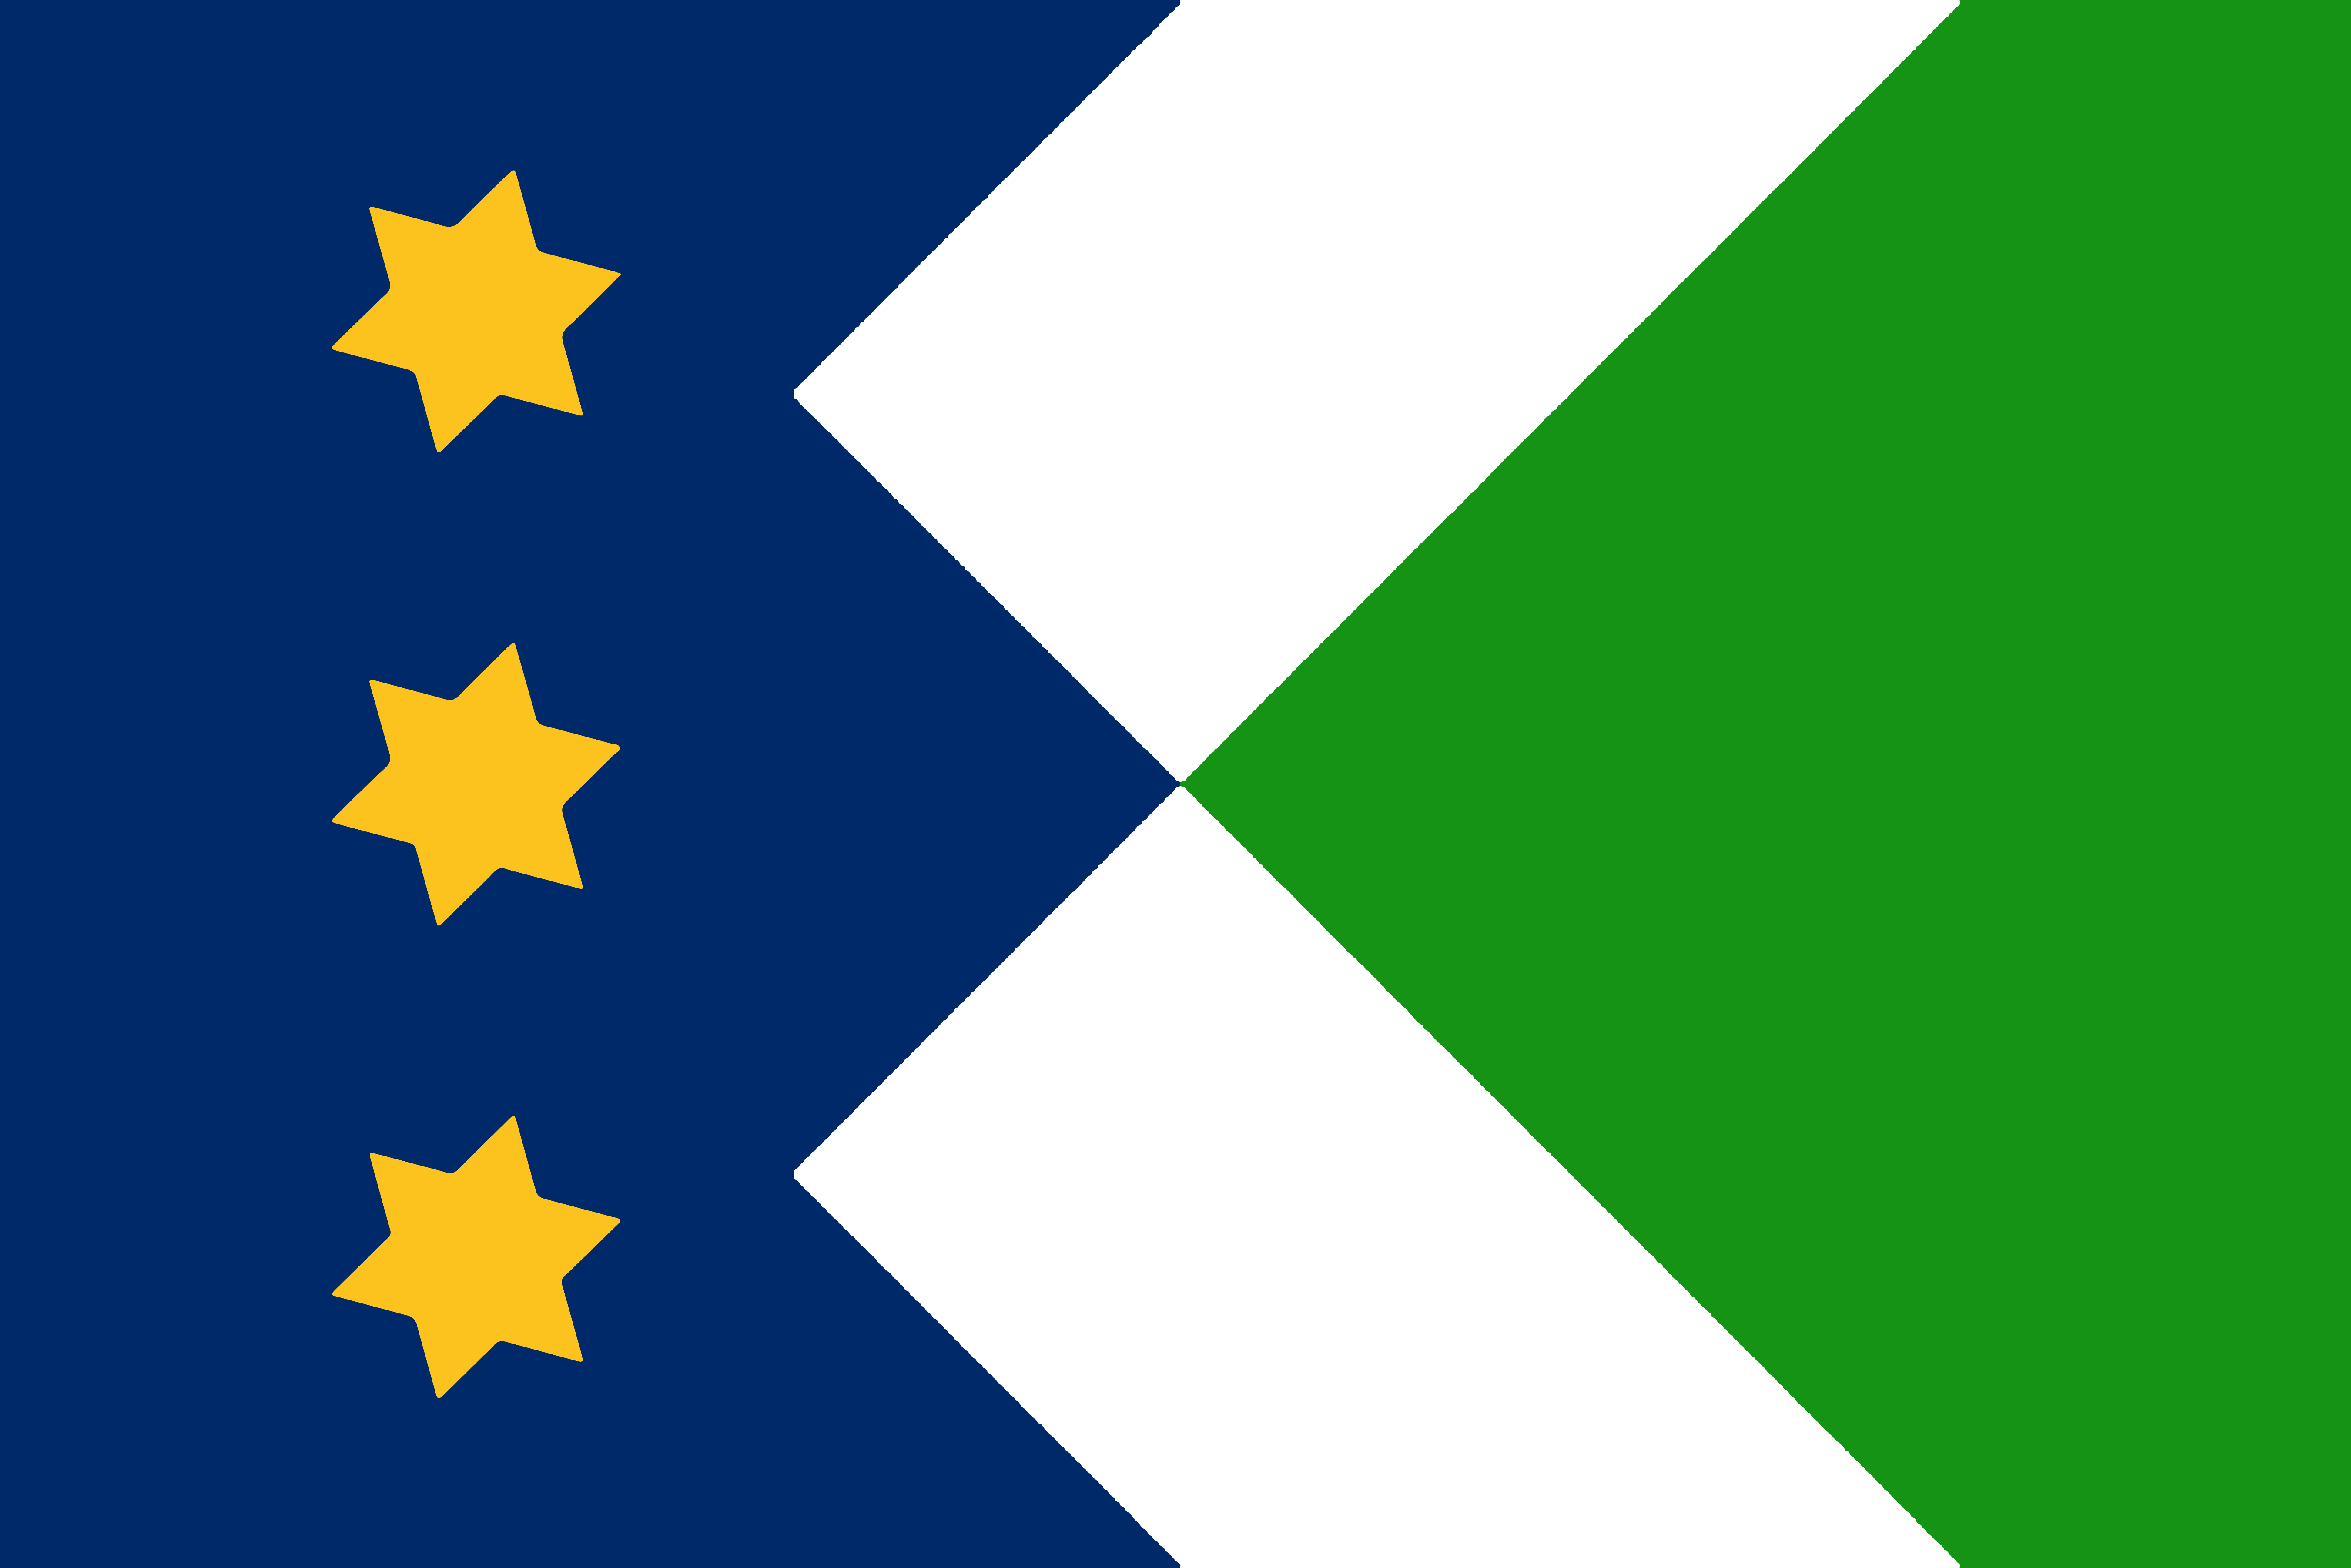 Personal Standard R Vexillology Flag Country Flags Eu Flag